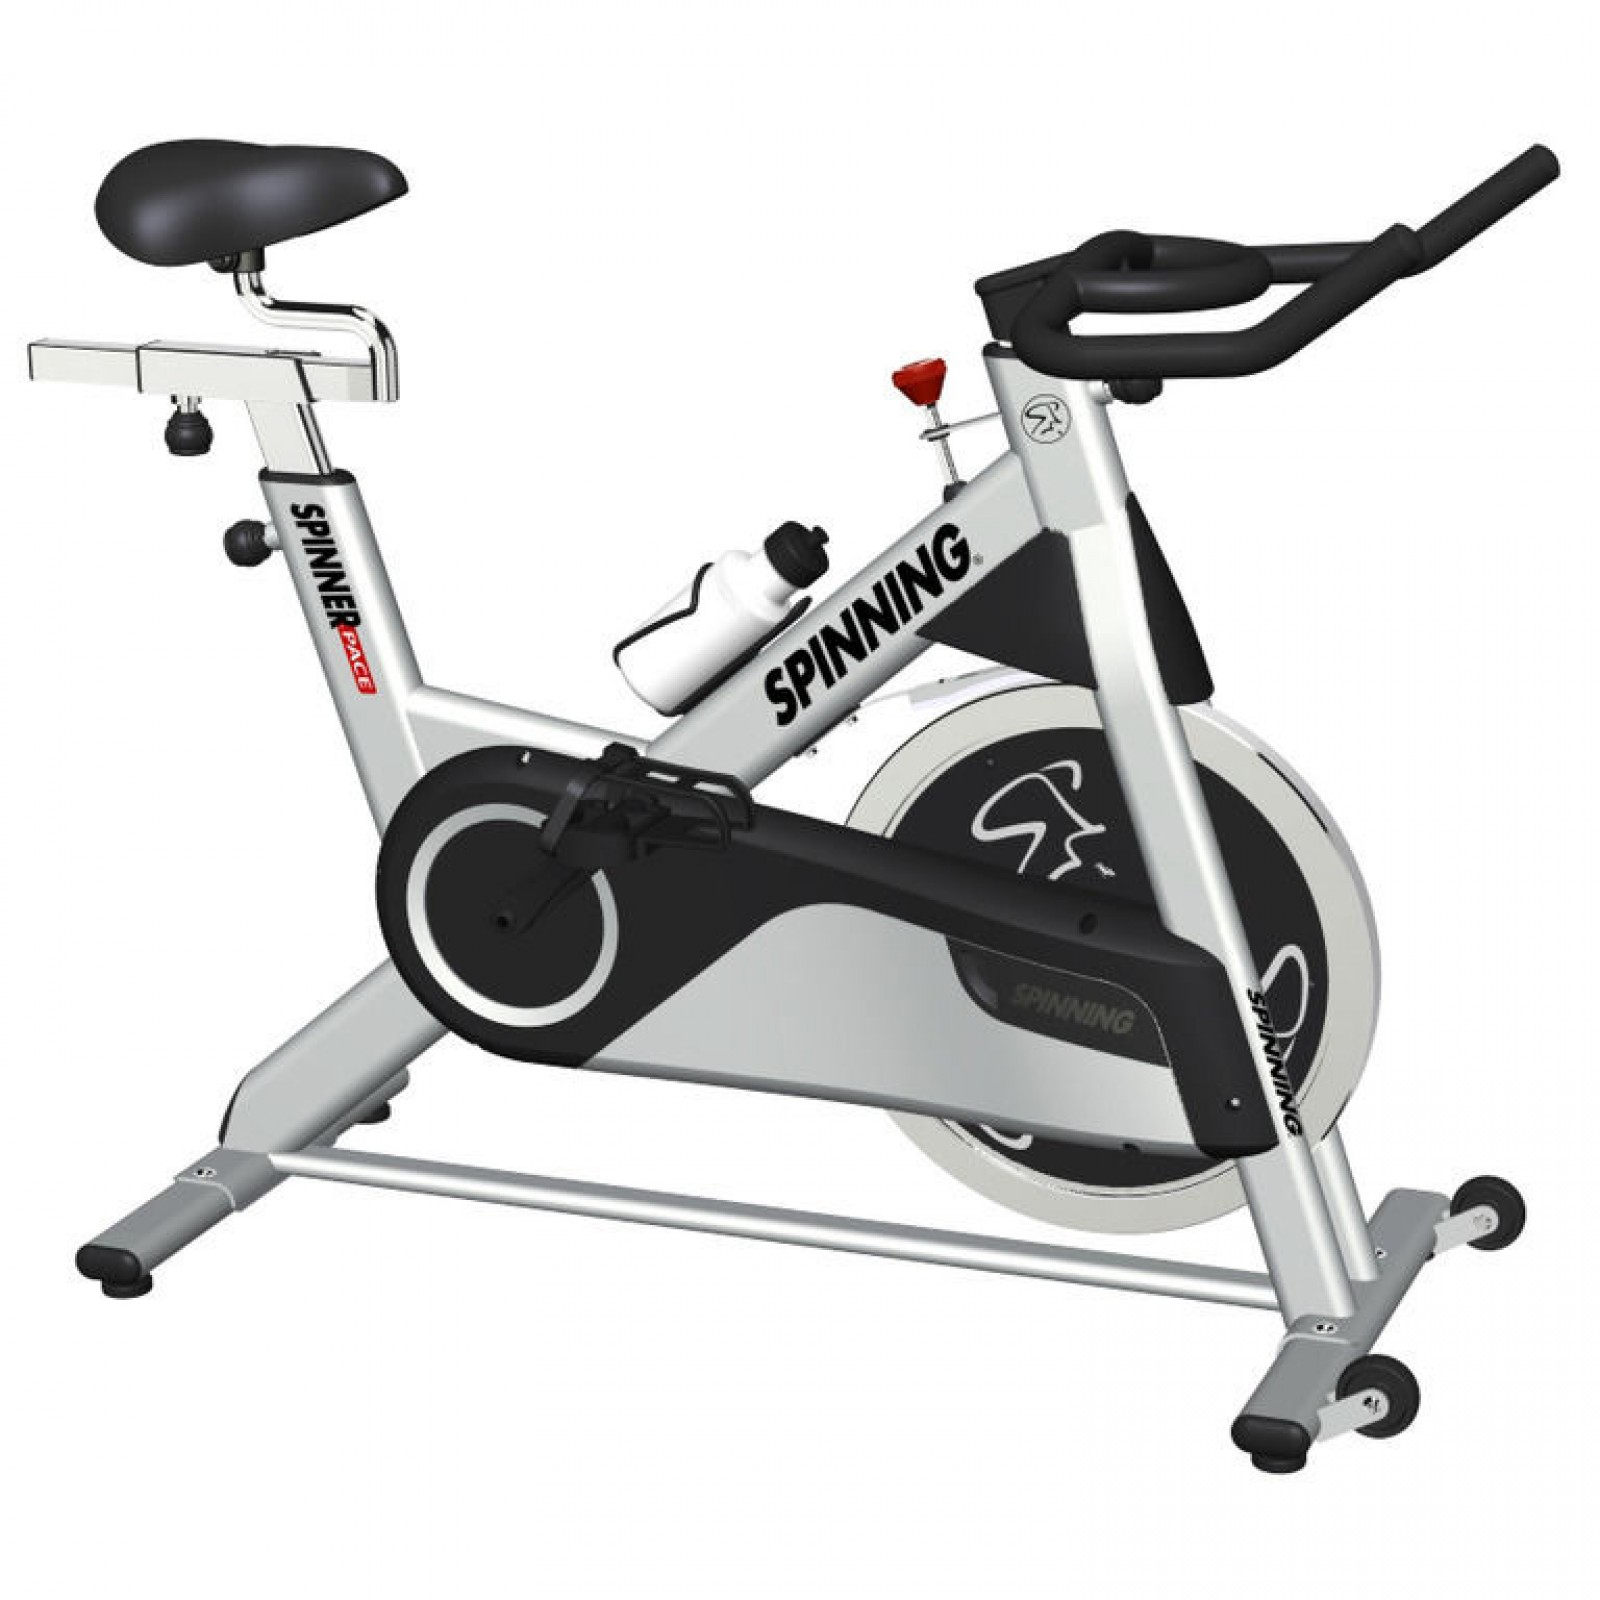 Spinning Spinner Pace Indoor Cycling Magazin